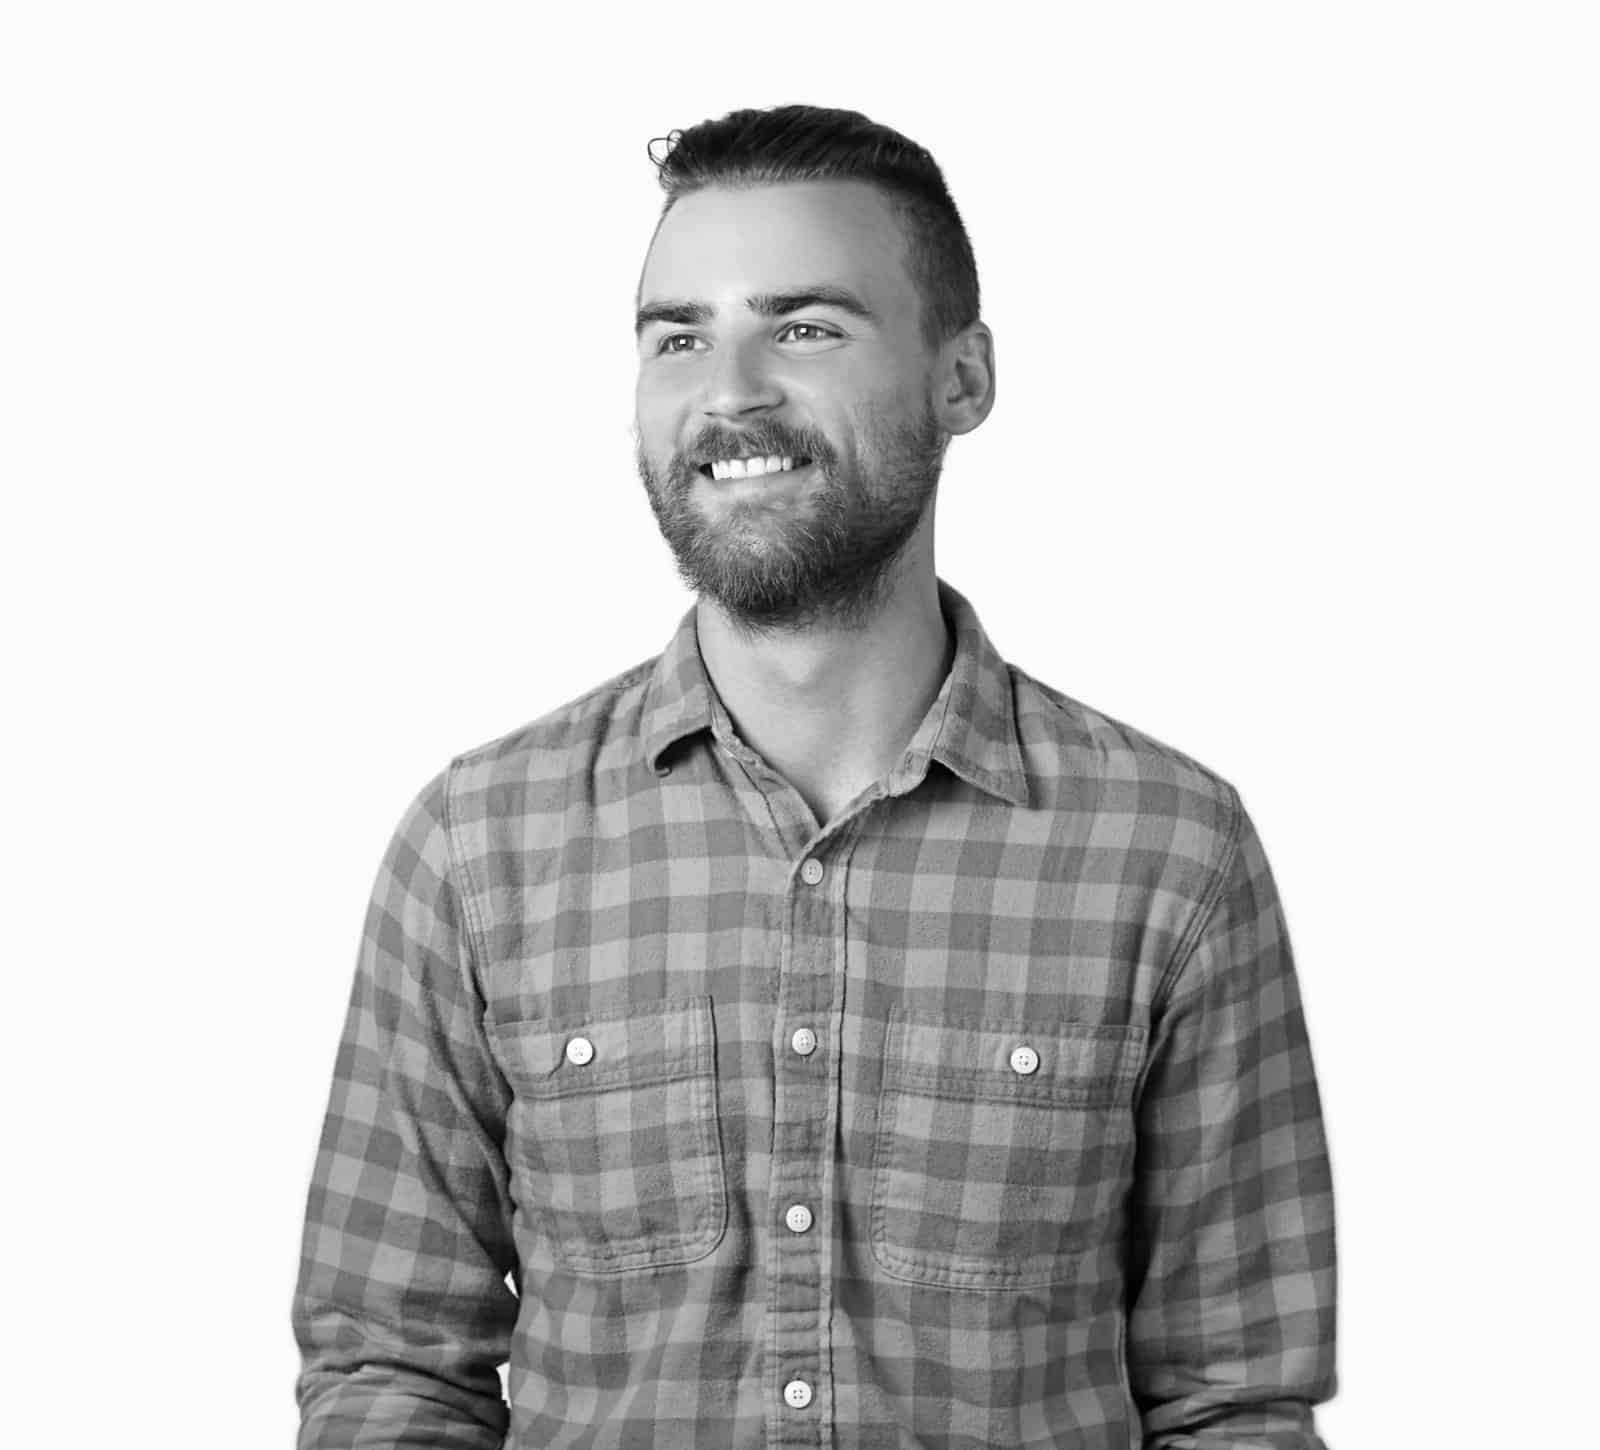 Portrait of Clint Hess, Video Production Specialist at Siege Media